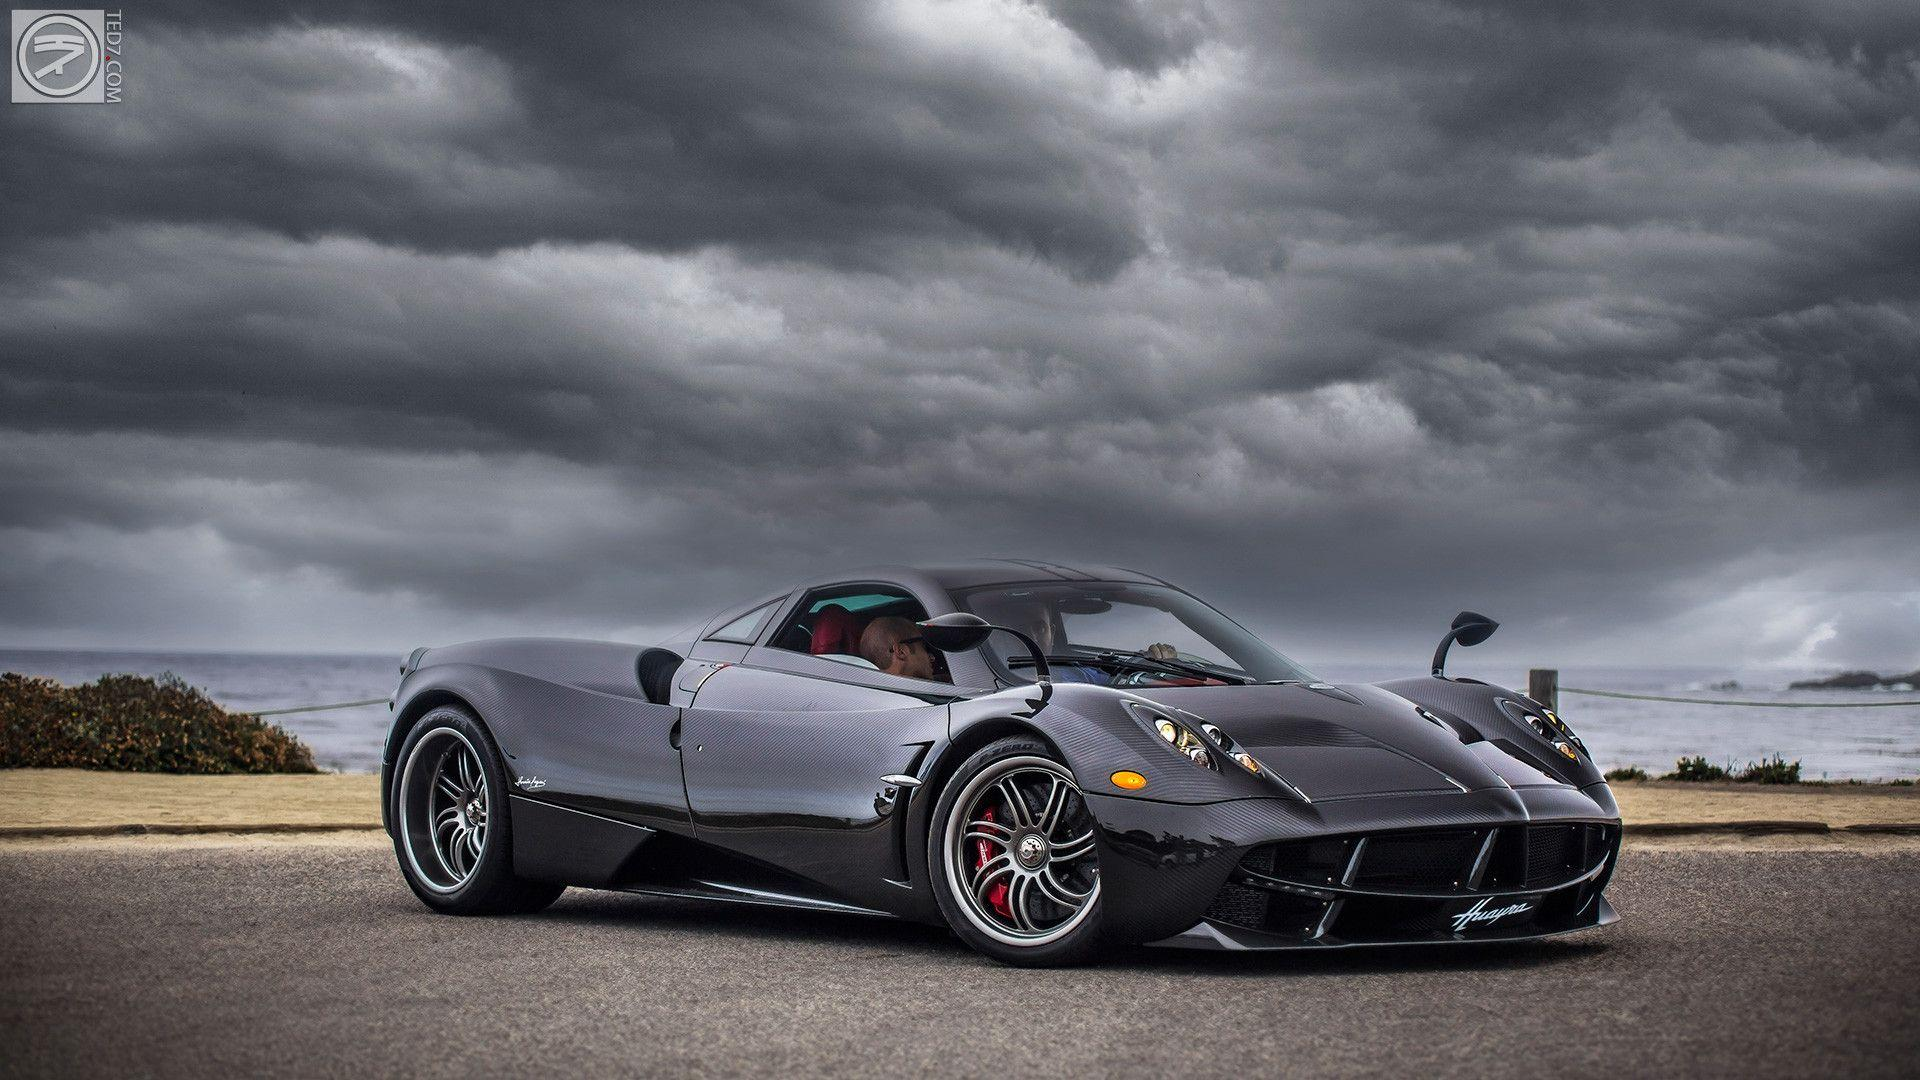 Pagani Huayra Carbon Edition Wallpapers Pagani Car Wallpapers